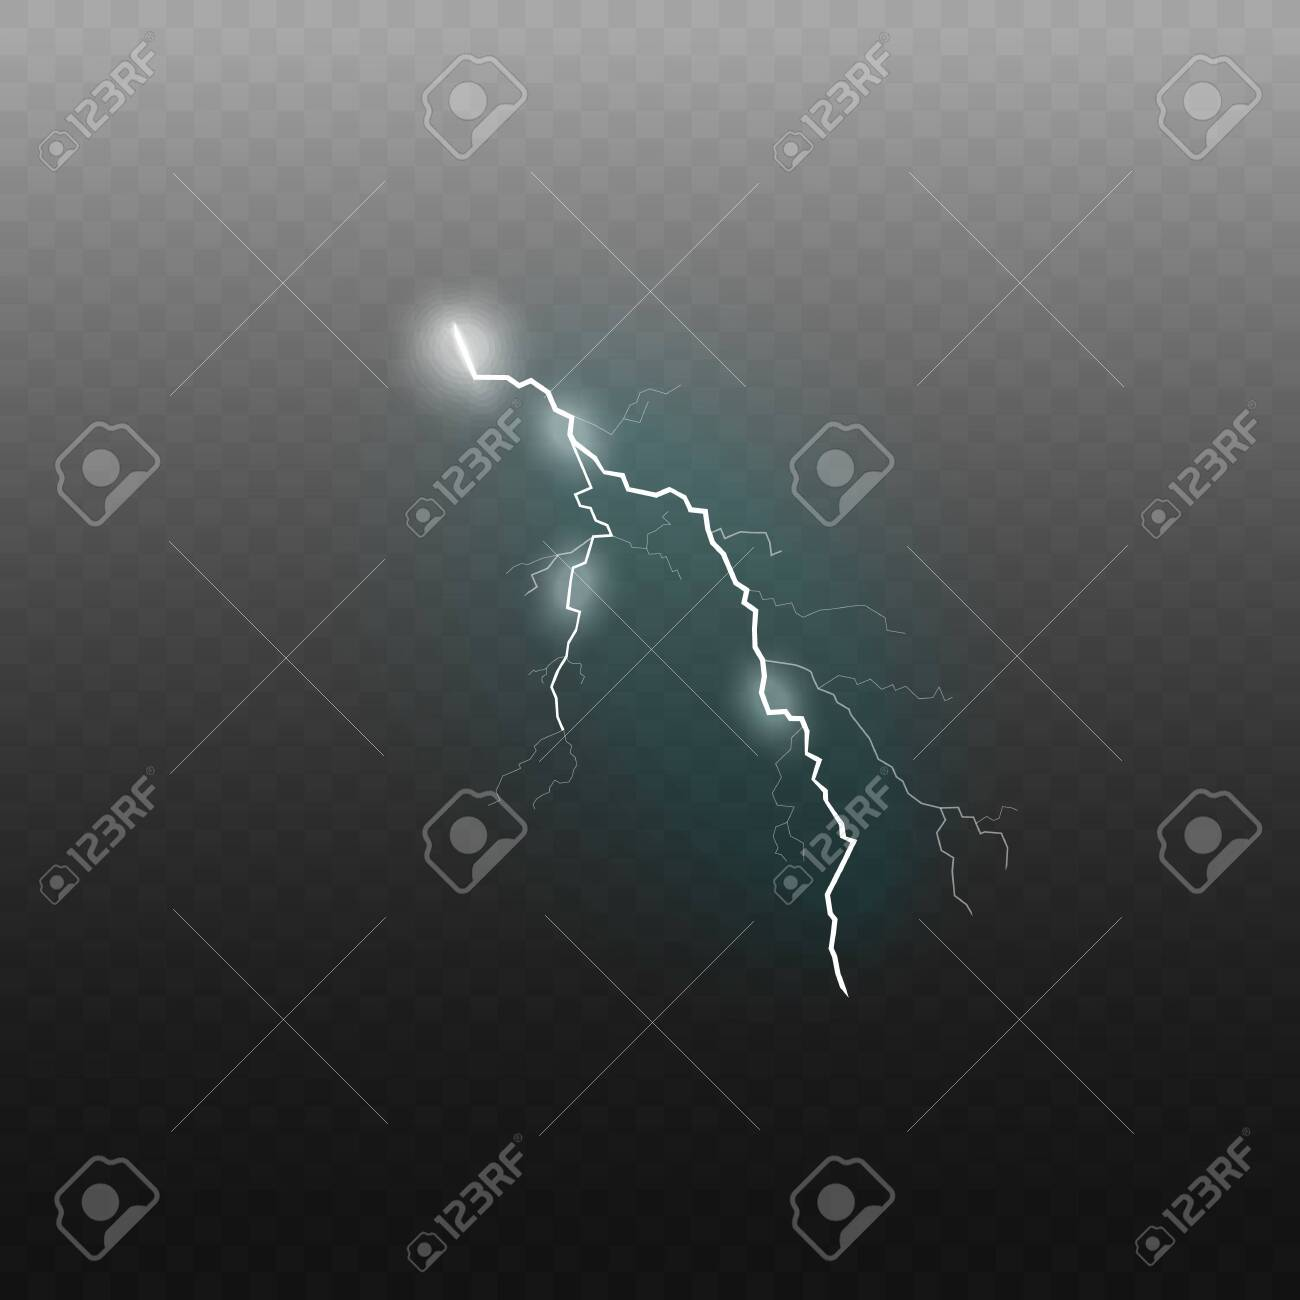 Lightning sparkling flash effect or glowing thunderbolt 3d realistic vector illustration isolated on transparent background. Electricity charge and power symbol. - 128948081